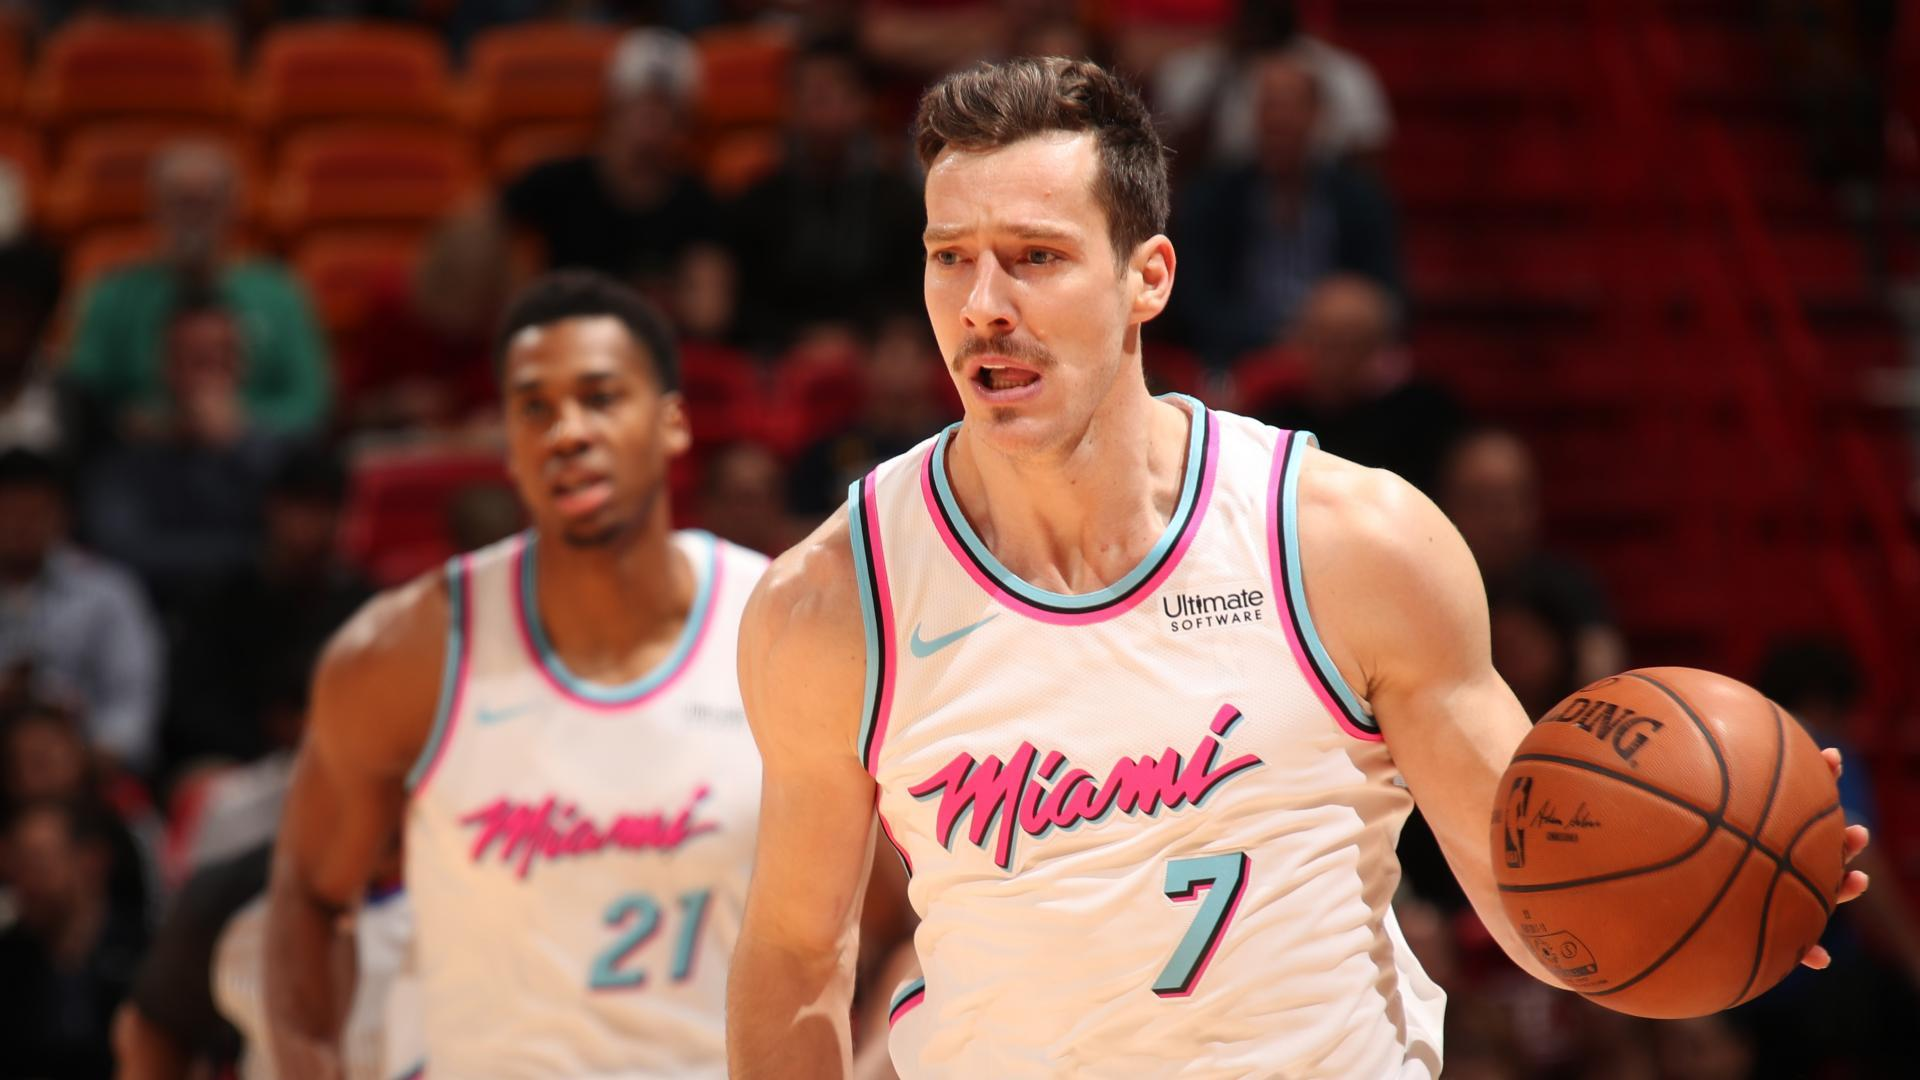 019247dd274 Goran Dragic to replace injured Kevin Love on Team LeBron in 2018 NBA All-Star  Game